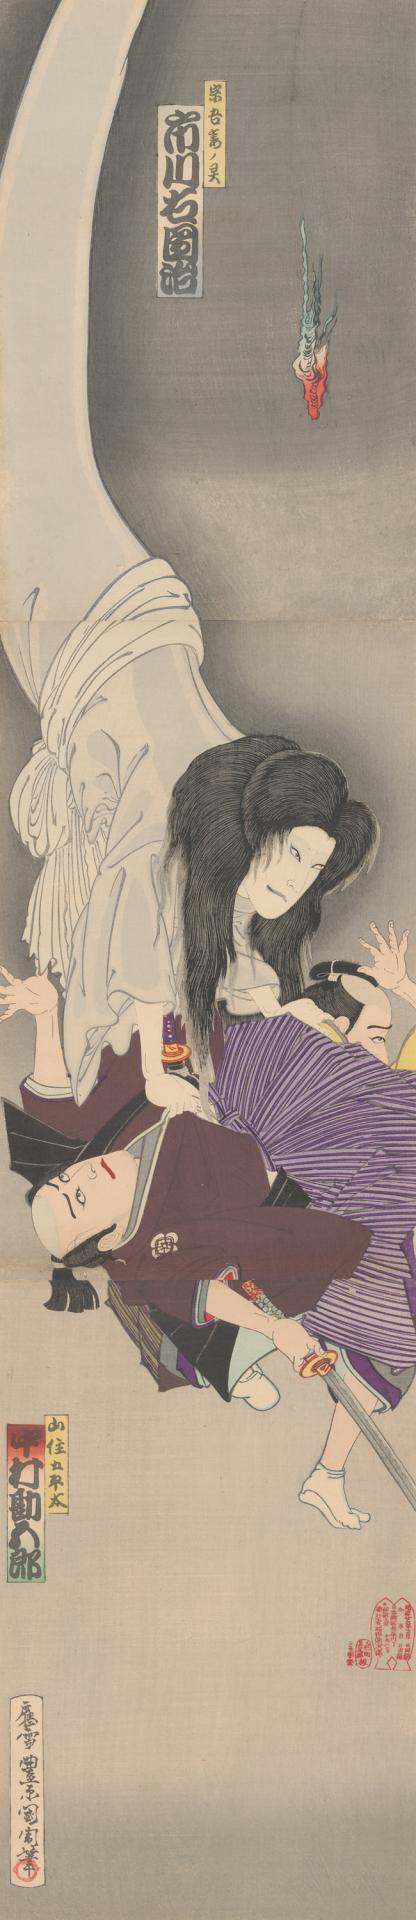 Ichikawa Udanji as the ghost of Sogoro in the play Sakura Sogoro